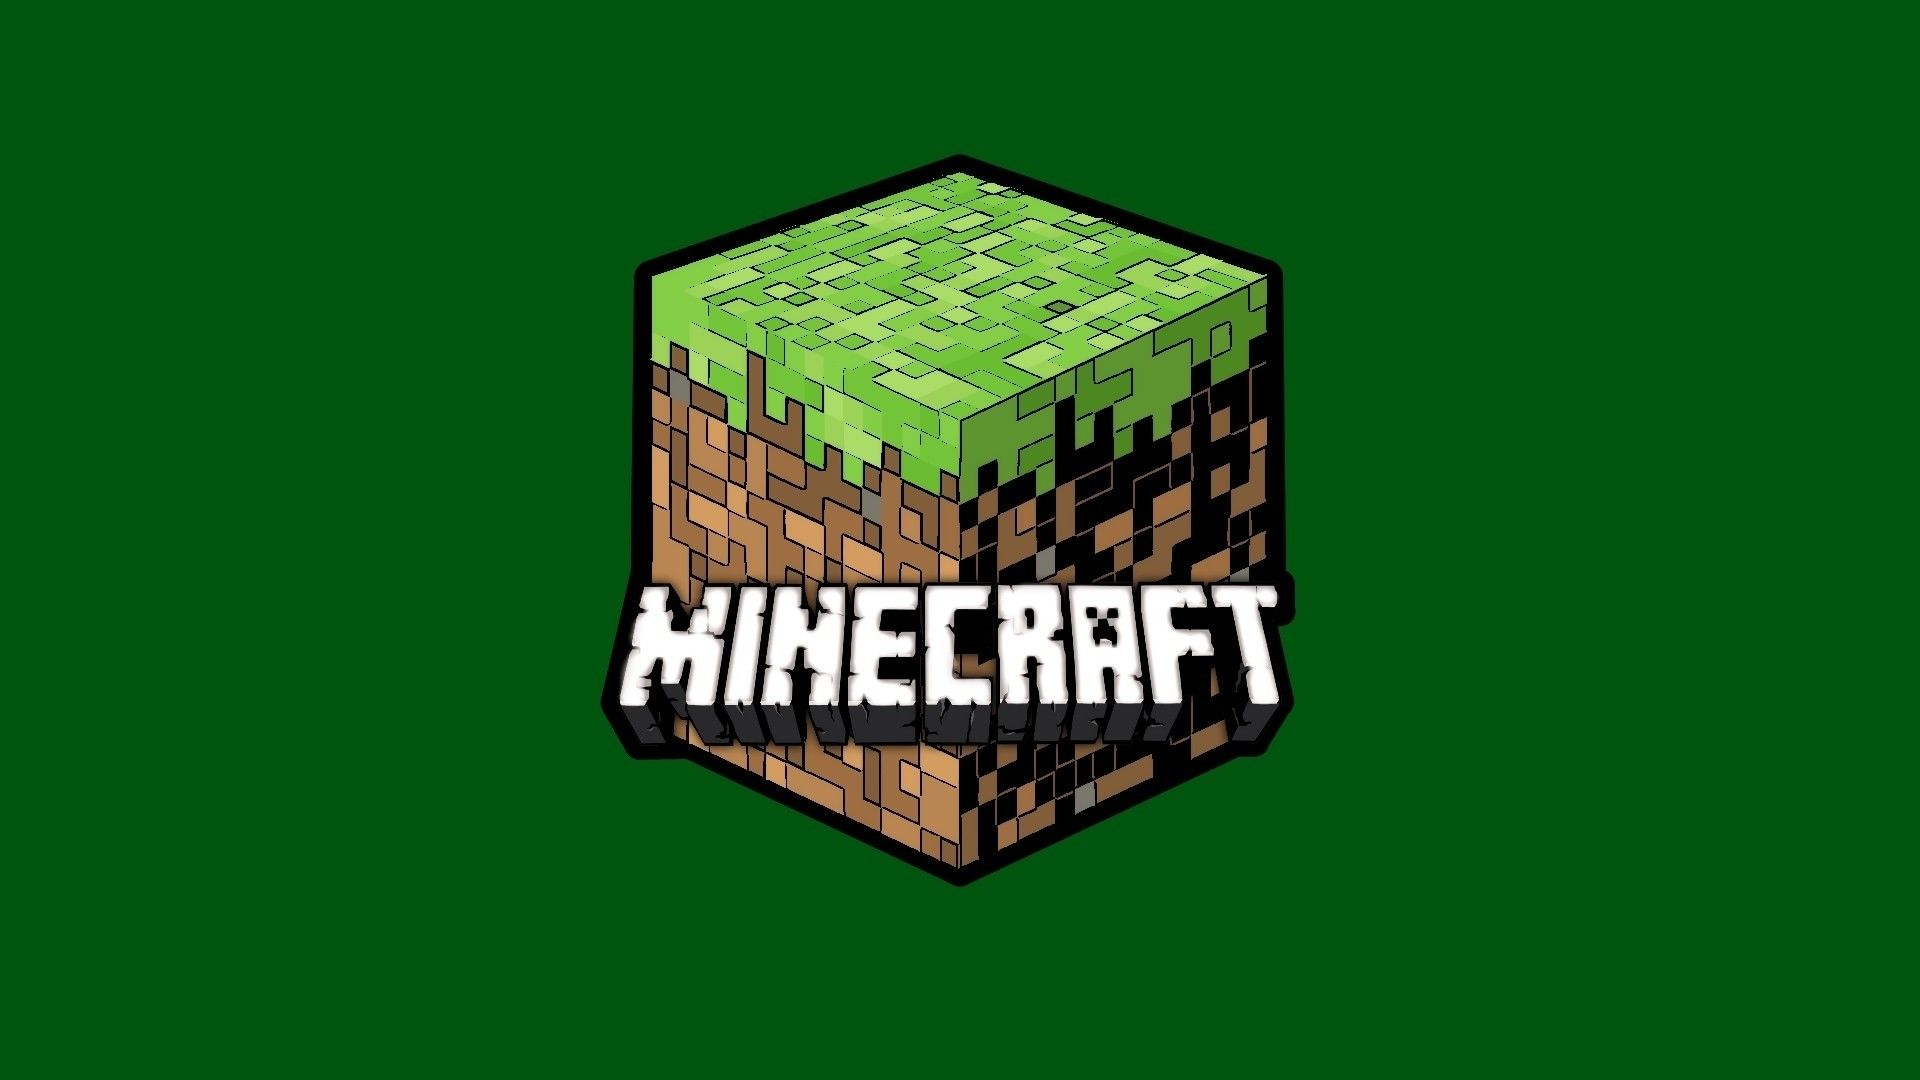 Most Inspiring Wallpaper Minecraft Phone - 872c546e1a83b30774f00529d48f2d2a  Perfect Image Reference_74784.jpg